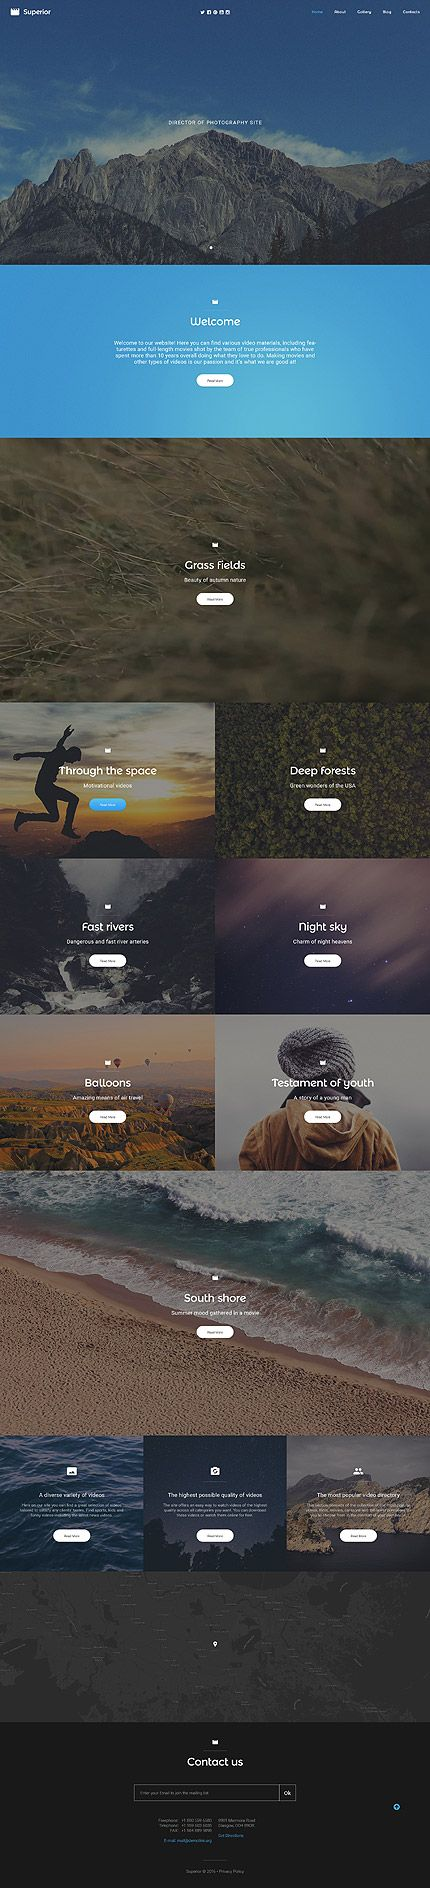 112 best Webdesign images on Pinterest | Editorial design, Page ...